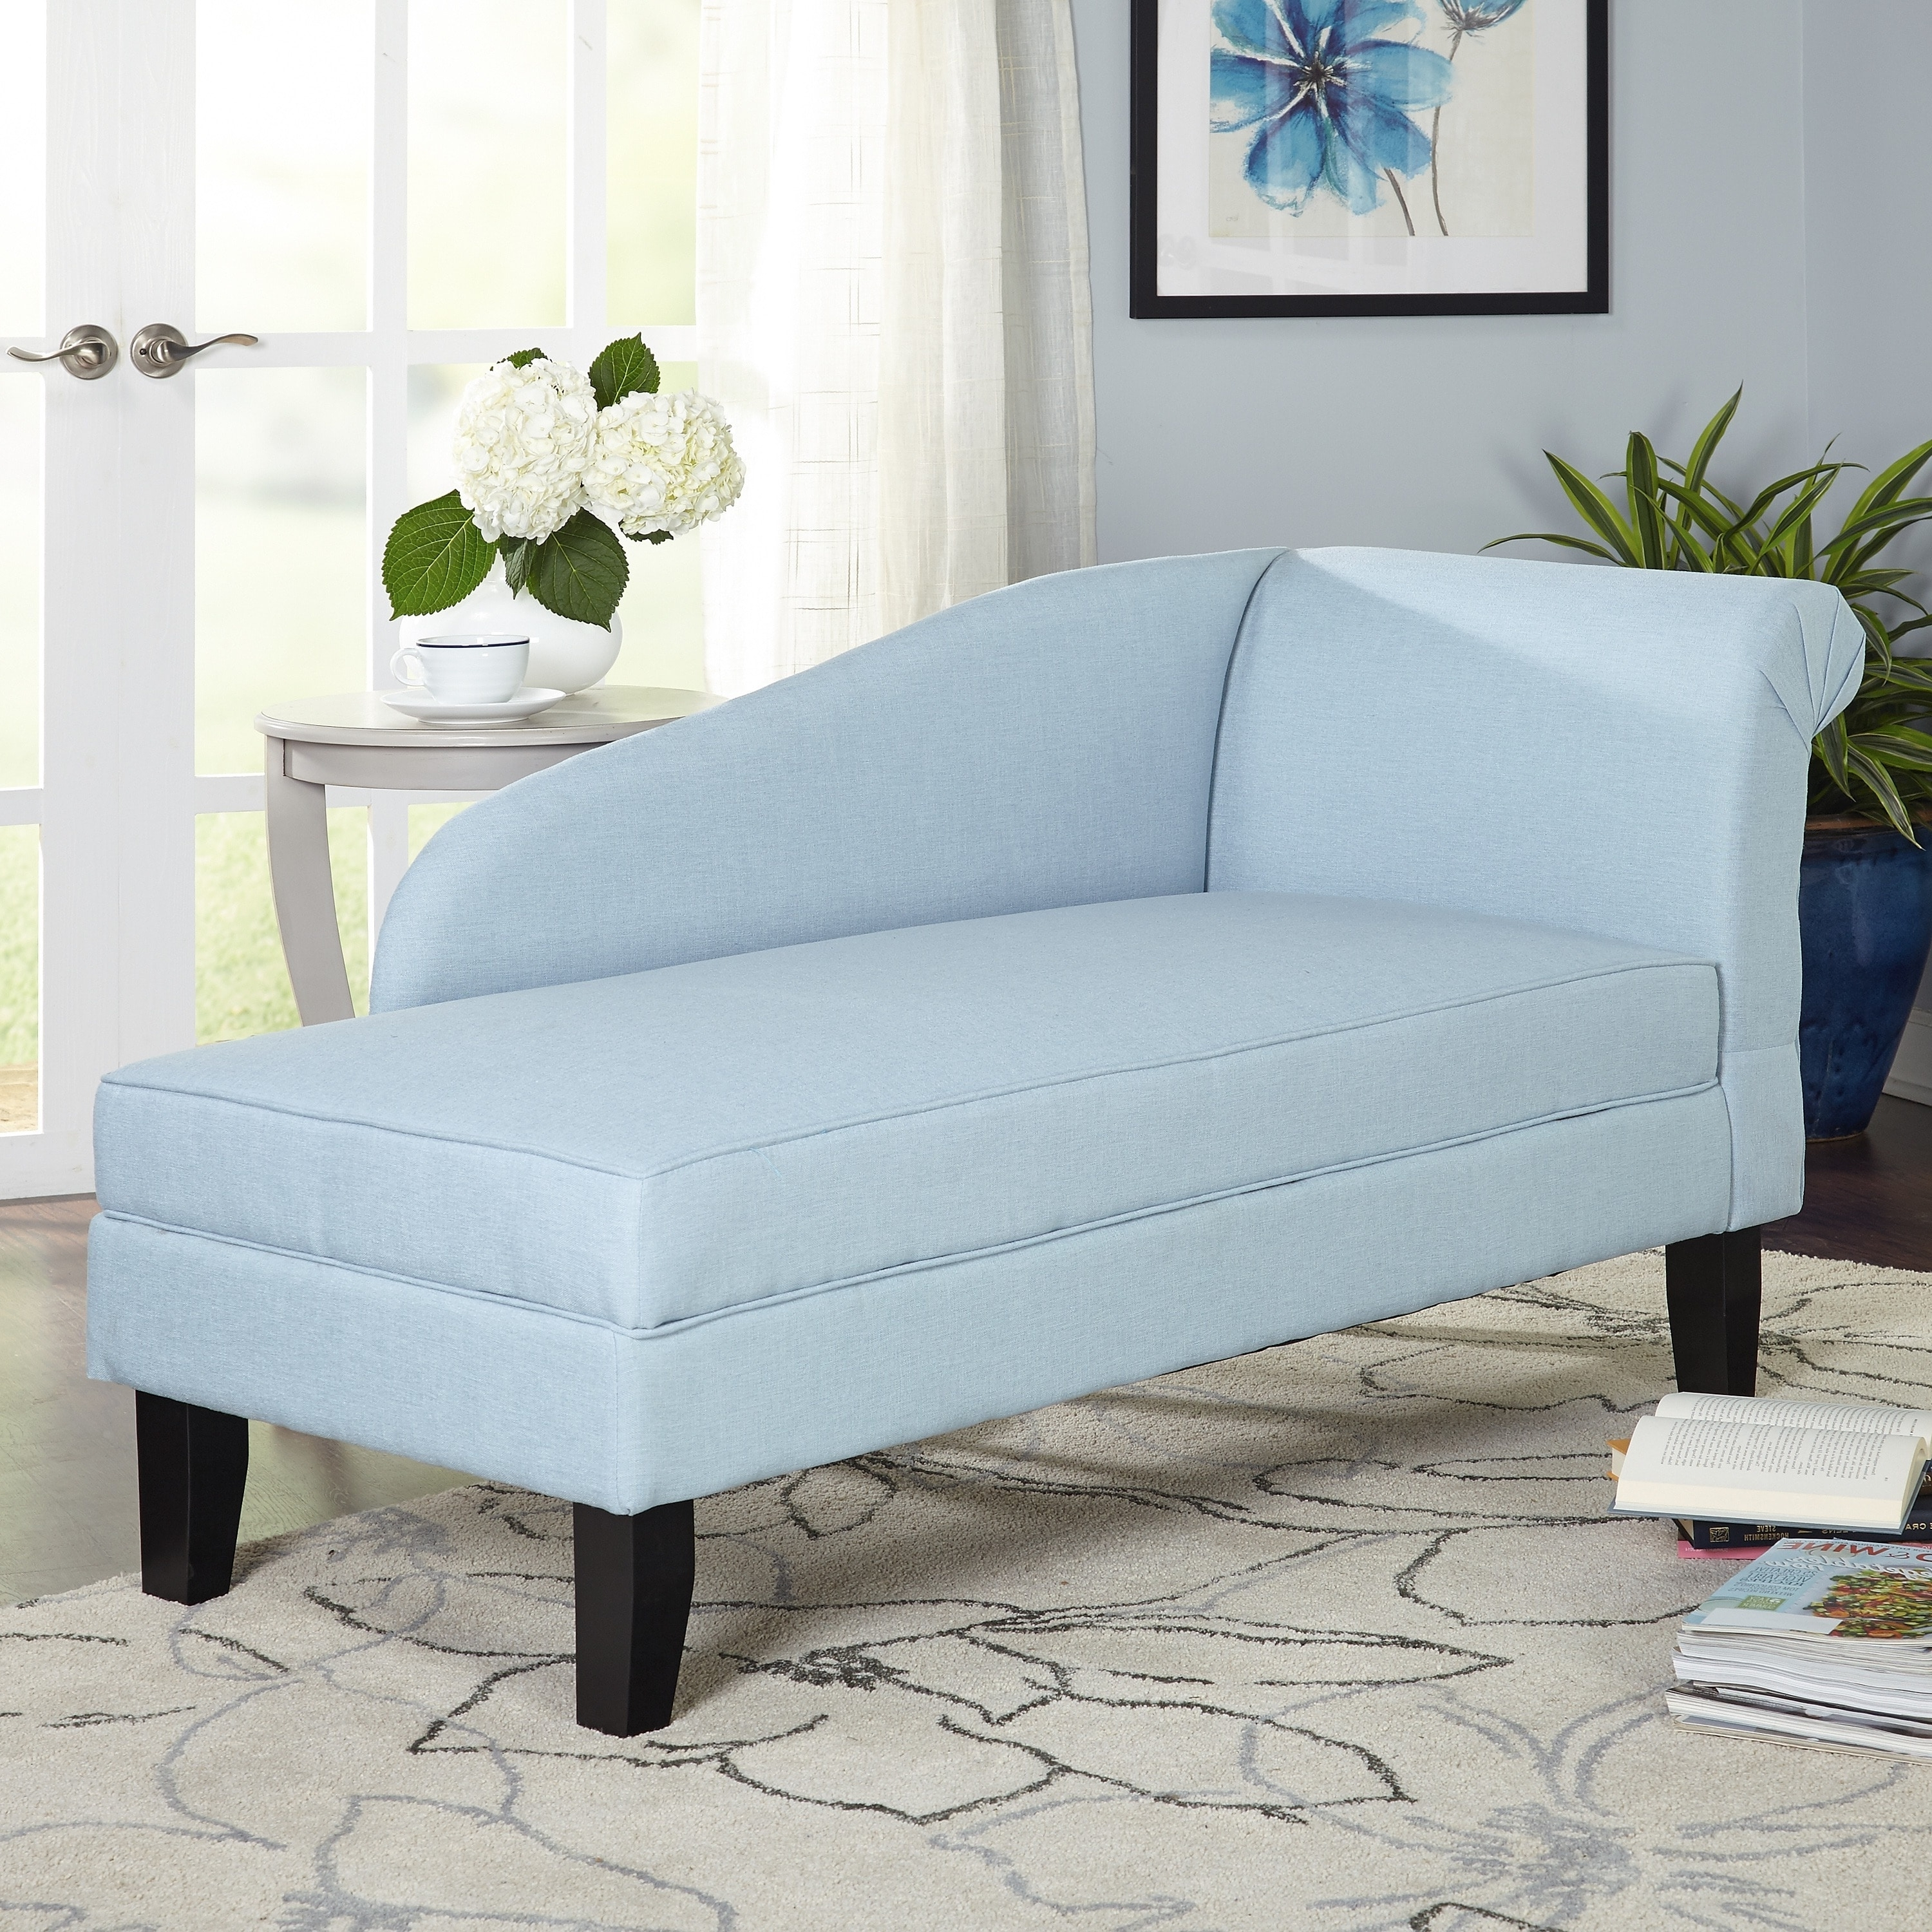 Storage Chaise Lounges With Most Recent Simple Living Chaise Lounge With Storage Compartment – Free (View 13 of 15)